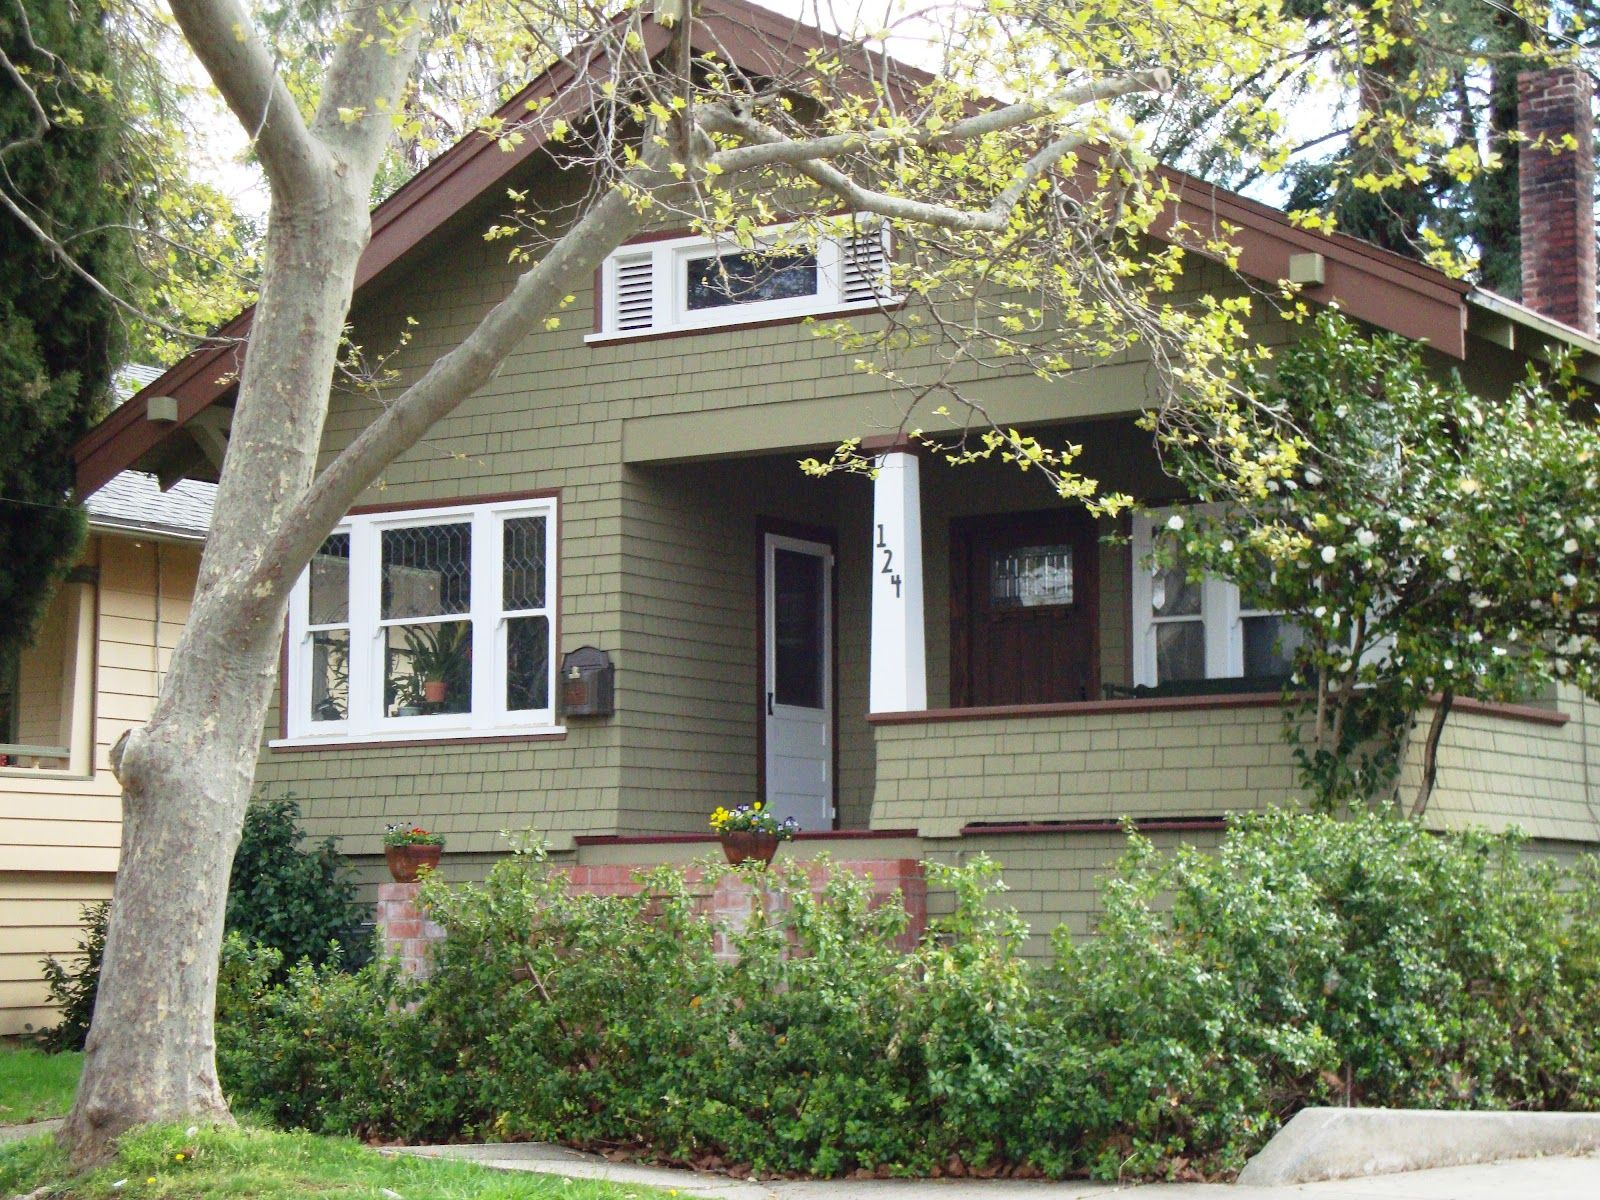 Popular exterior house paint colors suggested the exterior color be updated to sage green Brown exterior house paint schemes